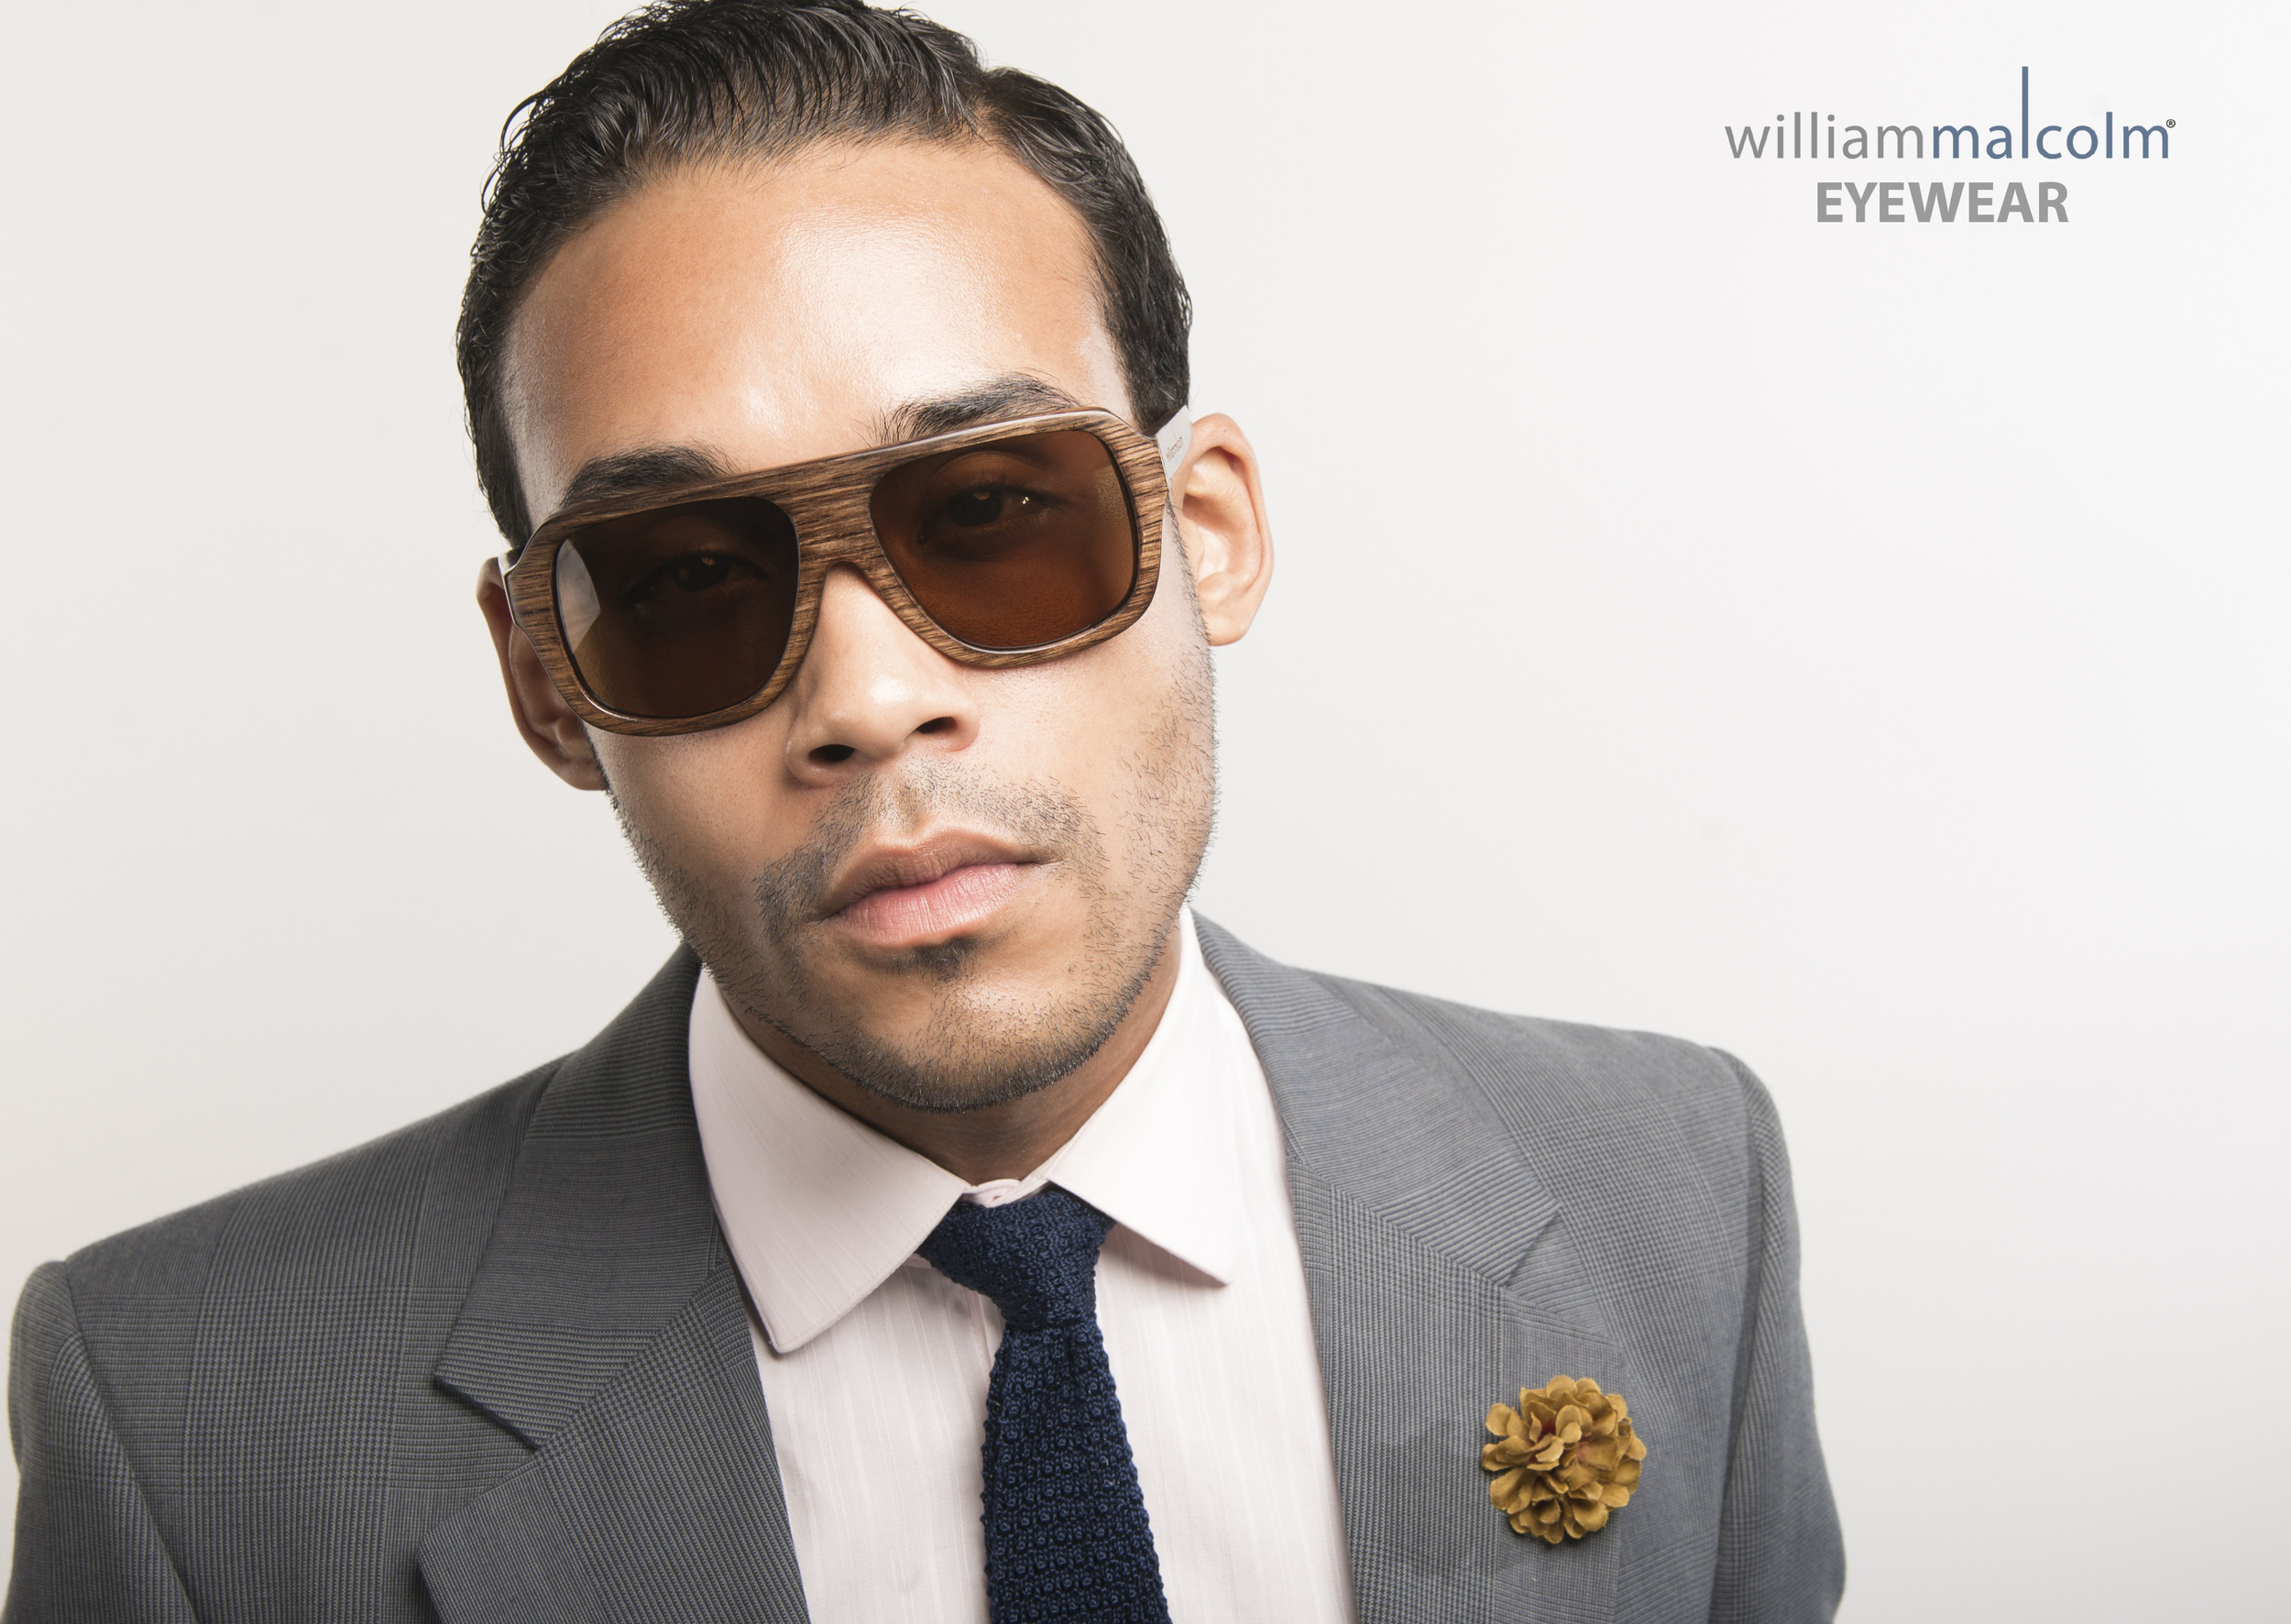 William Malcolm Luxe Collection Bespoke Custom Suit Eyewear